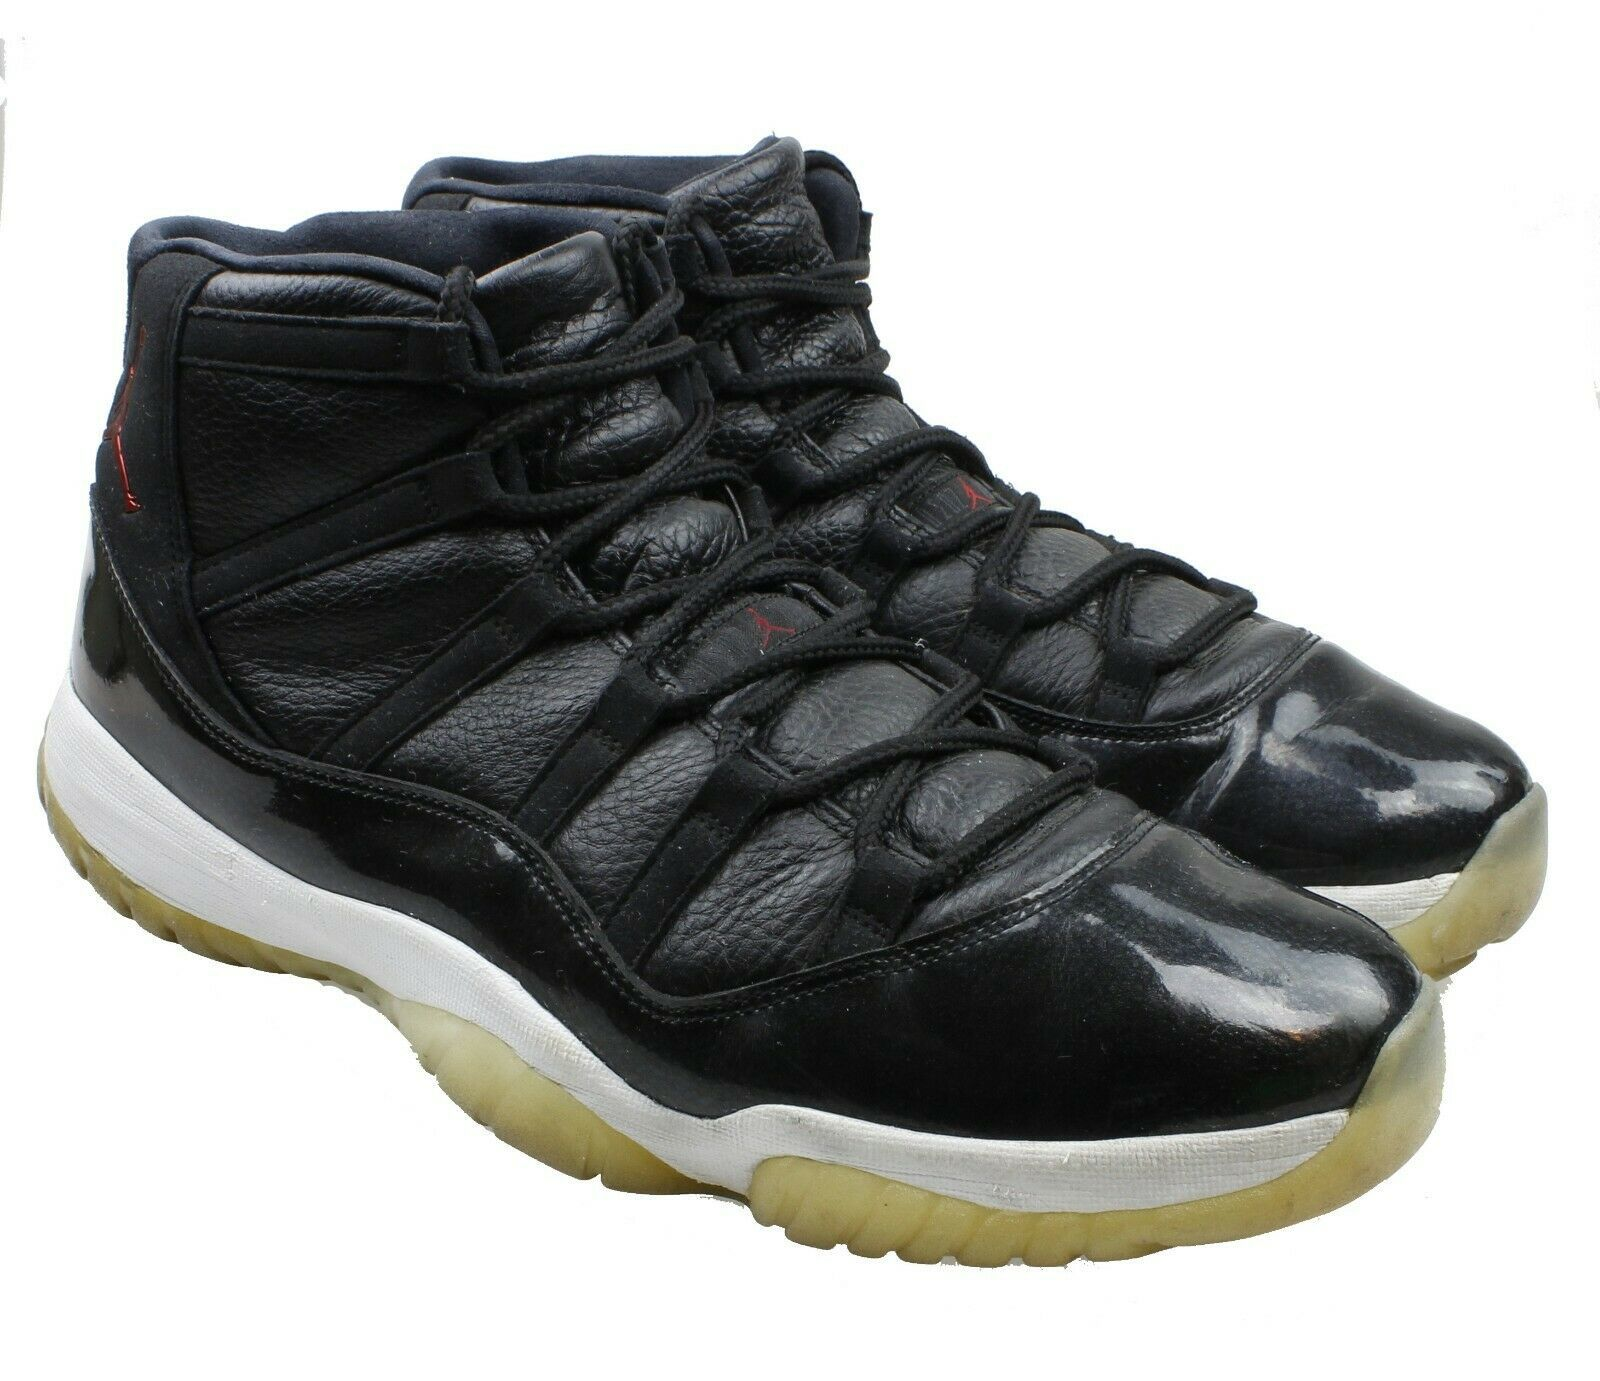 2c91c1fb538 Nike Air Jordan 11 72-10 Retro Black Gym Red and 50 similar items